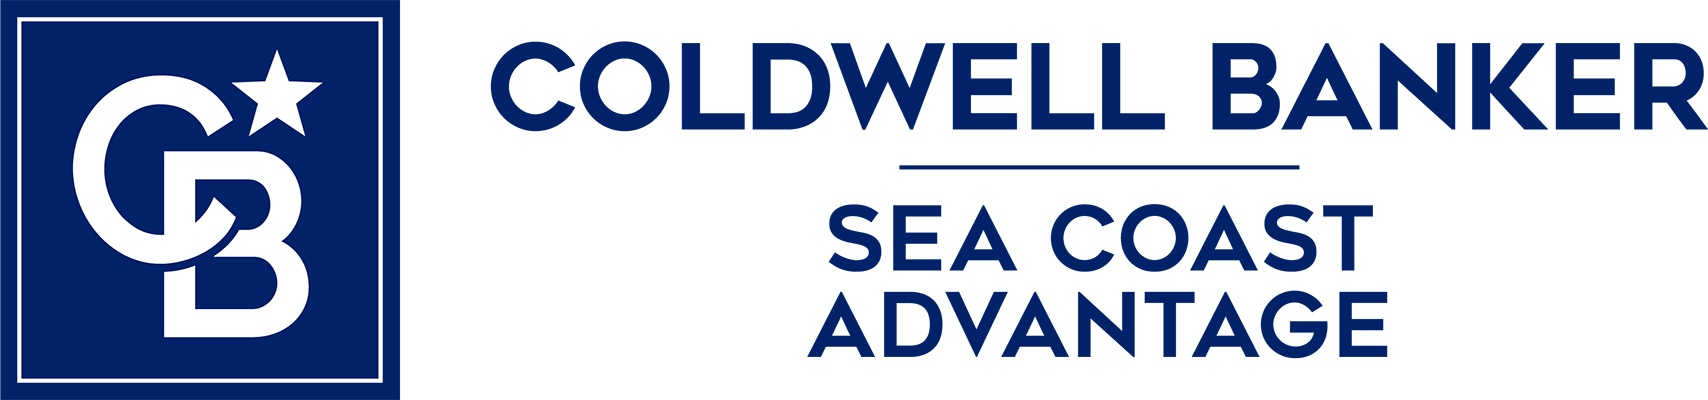 Terri Lawrence - Coldwell Banker Sea Coast Advantage Realty Logo